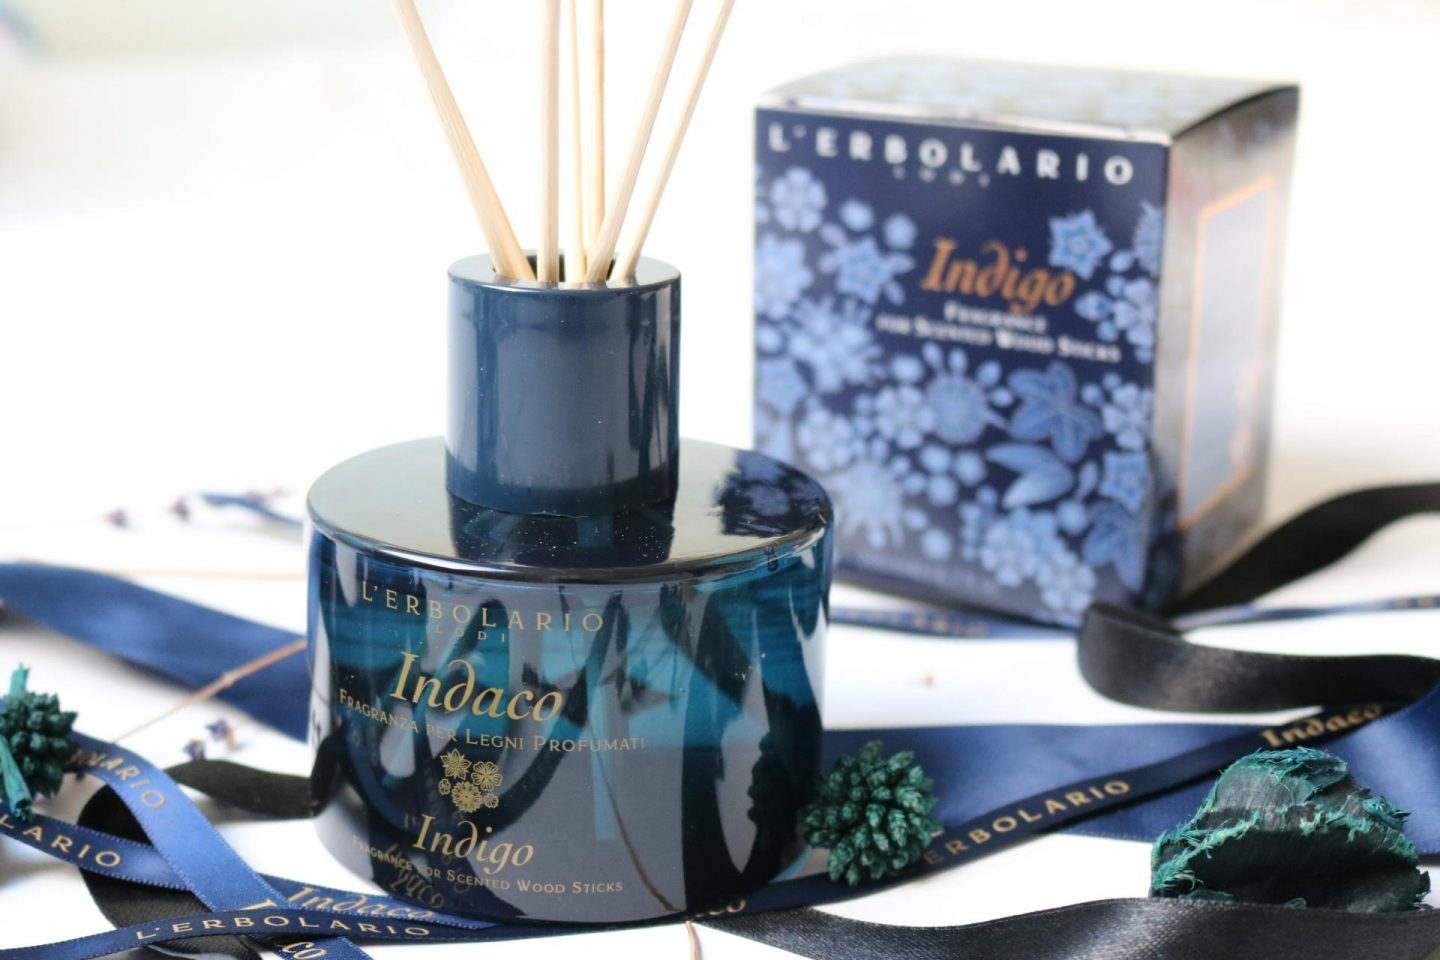 L'Erbolario and their dreamy Indigo Scented Wood Sticks